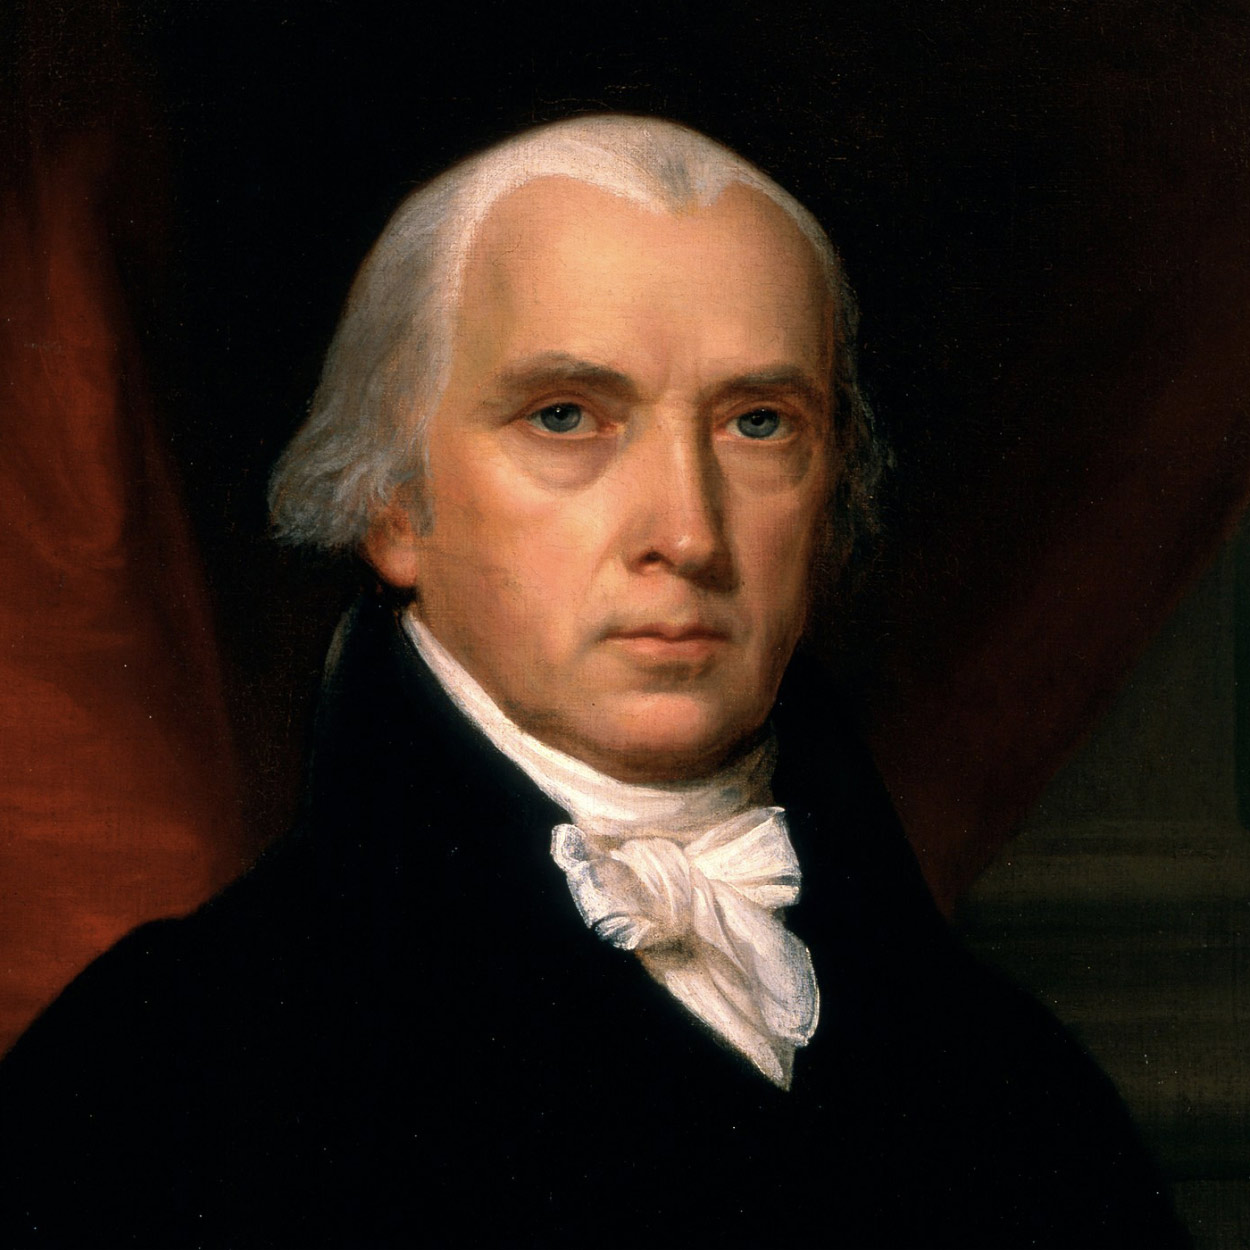 Portrait of James Madison, the 4th President of the United States